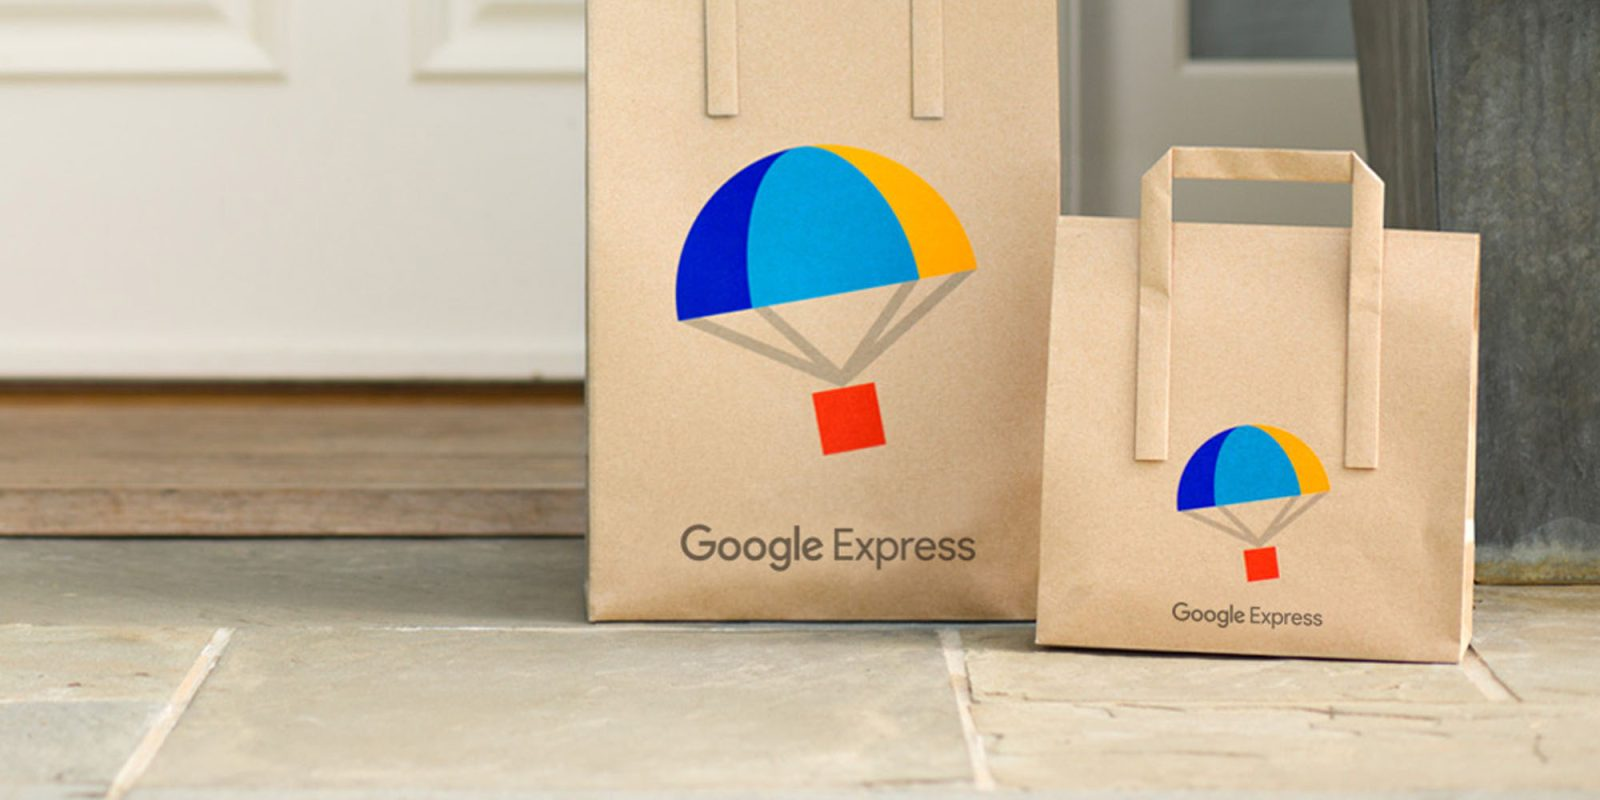 Save 25% off your next Google Express order with this promo code